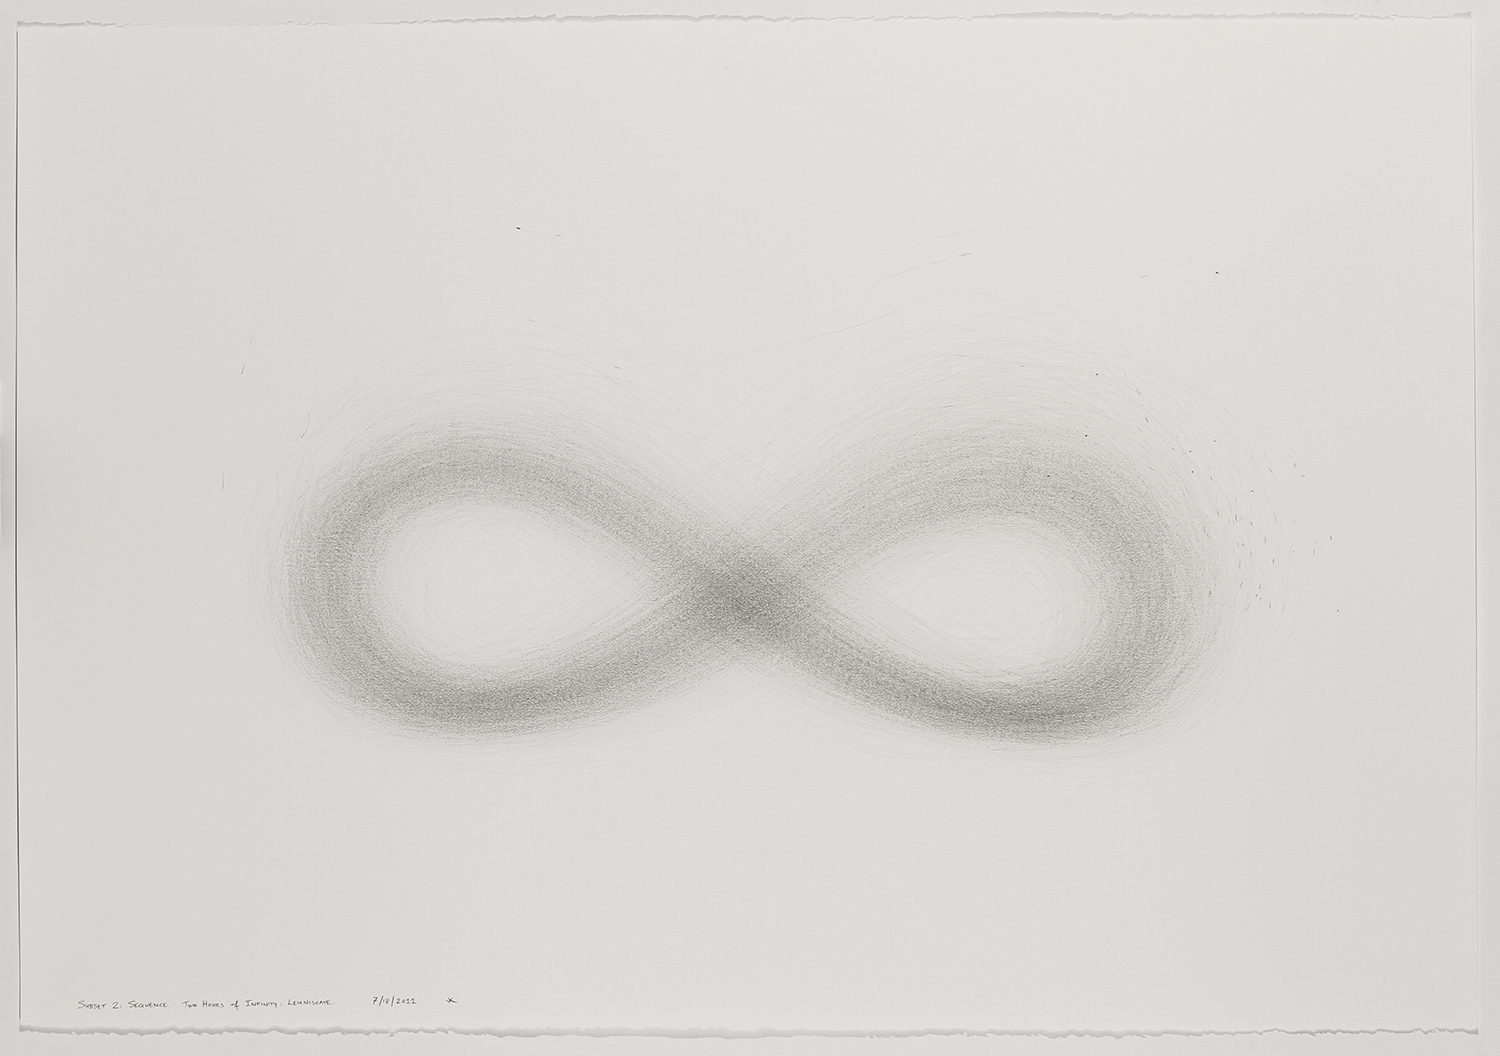 Two Hours of Infinity: Lemniscate